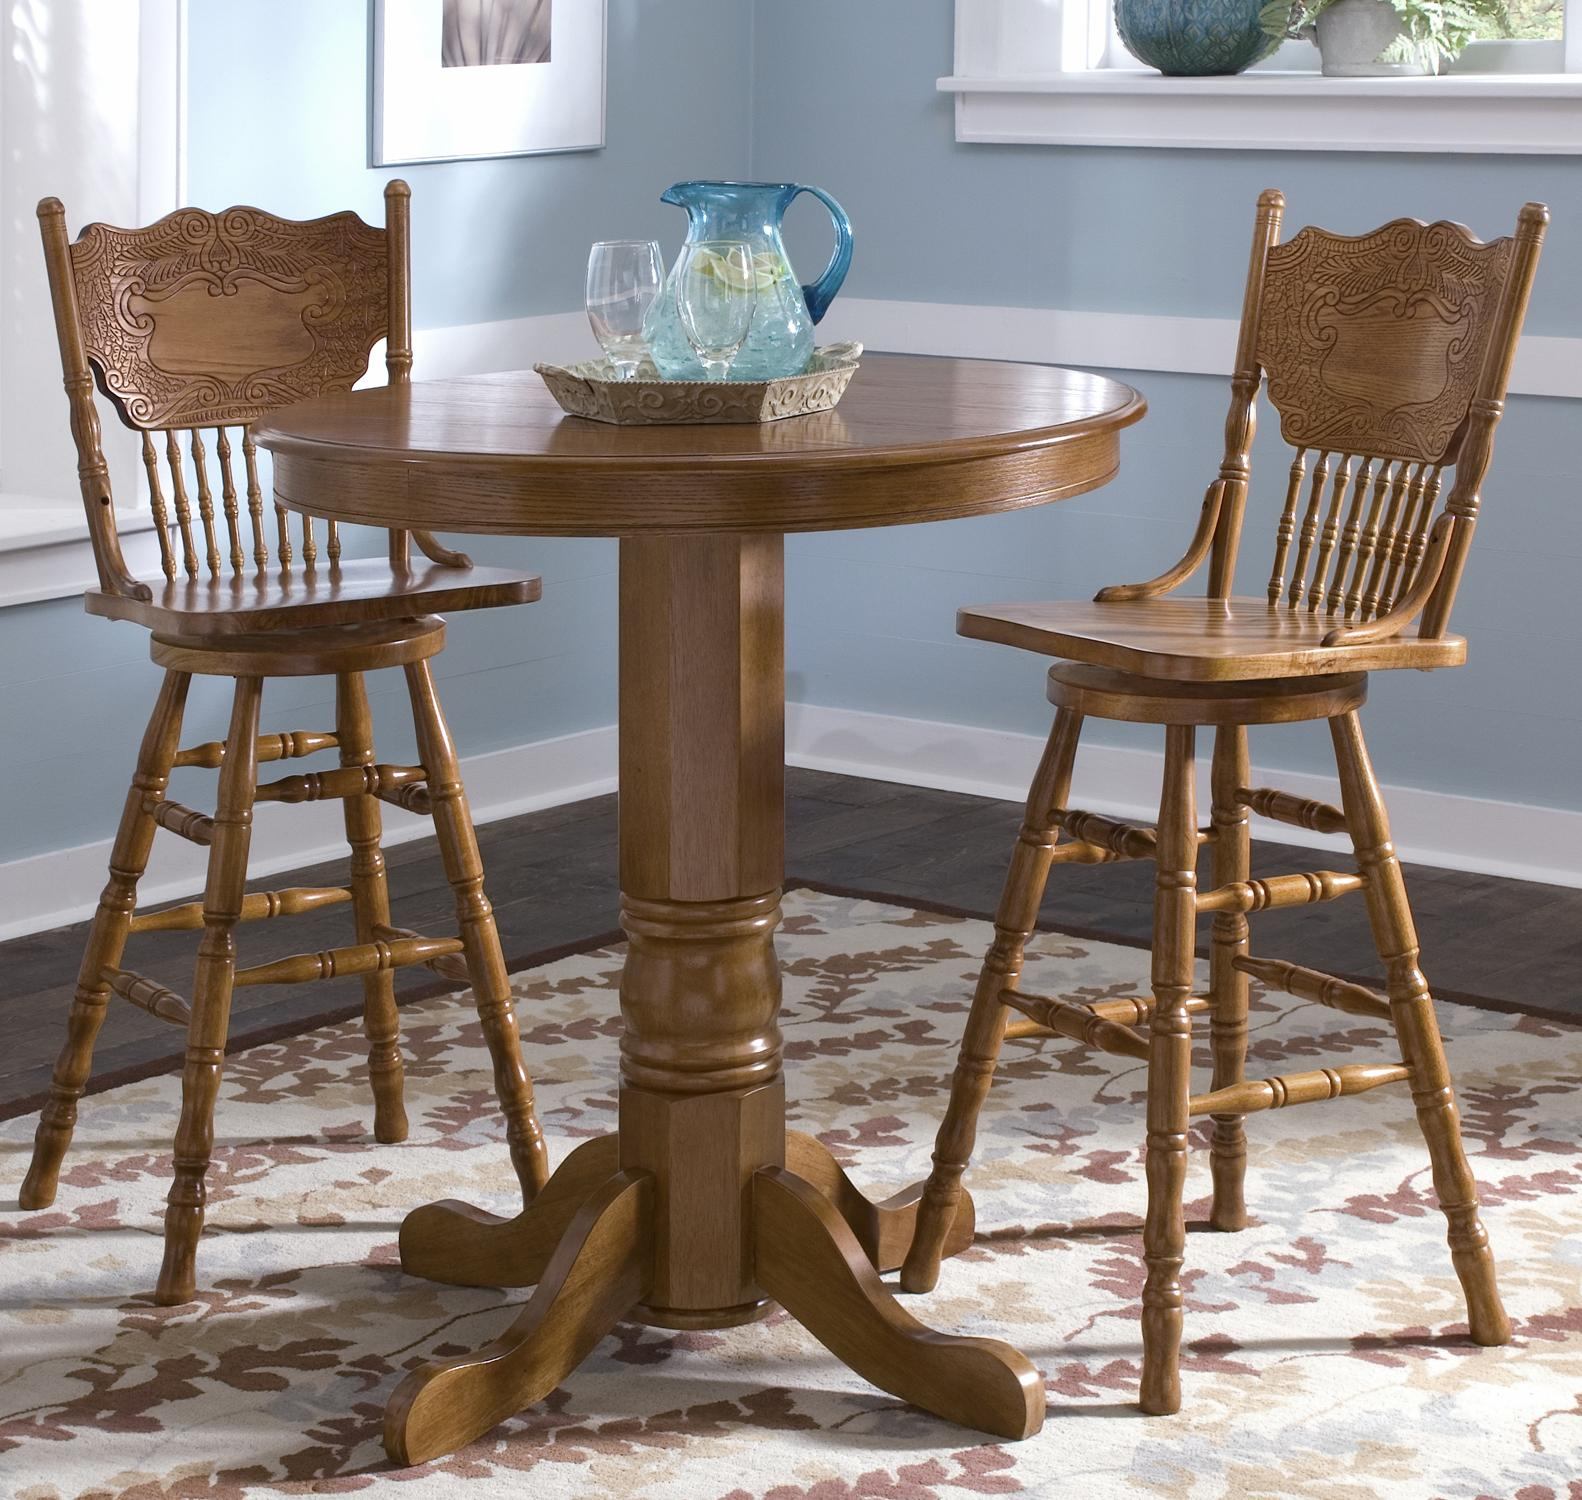 3-Piece Round Pub Table Dining Set & 3-Piece Round Pub Table Dining Set by Liberty Furniture | Wolf and ...